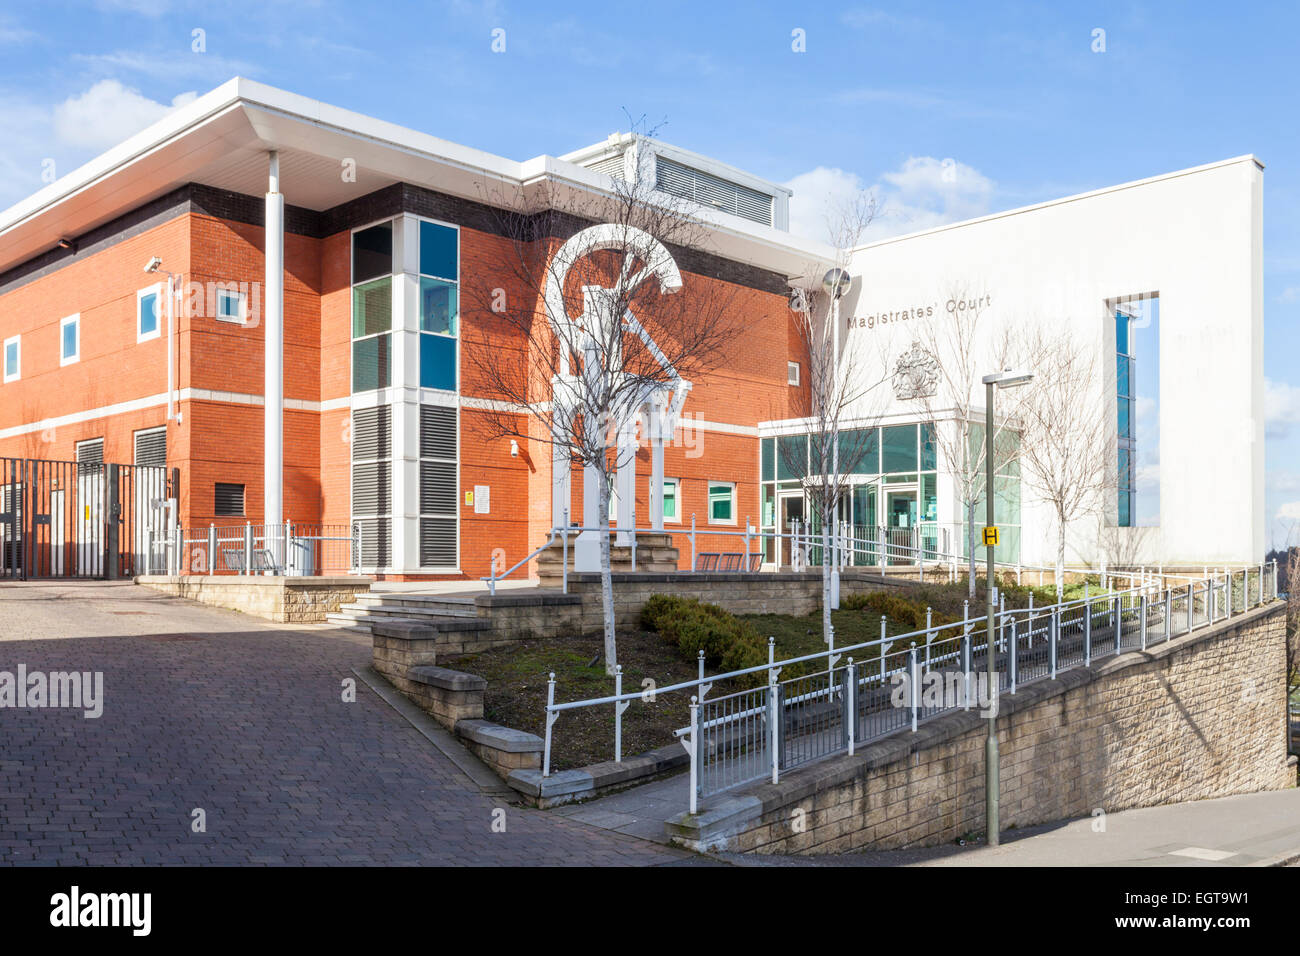 Chesterfield Magistrates' Court, Chesterfield, Derbyshire, England, UK - Stock Image